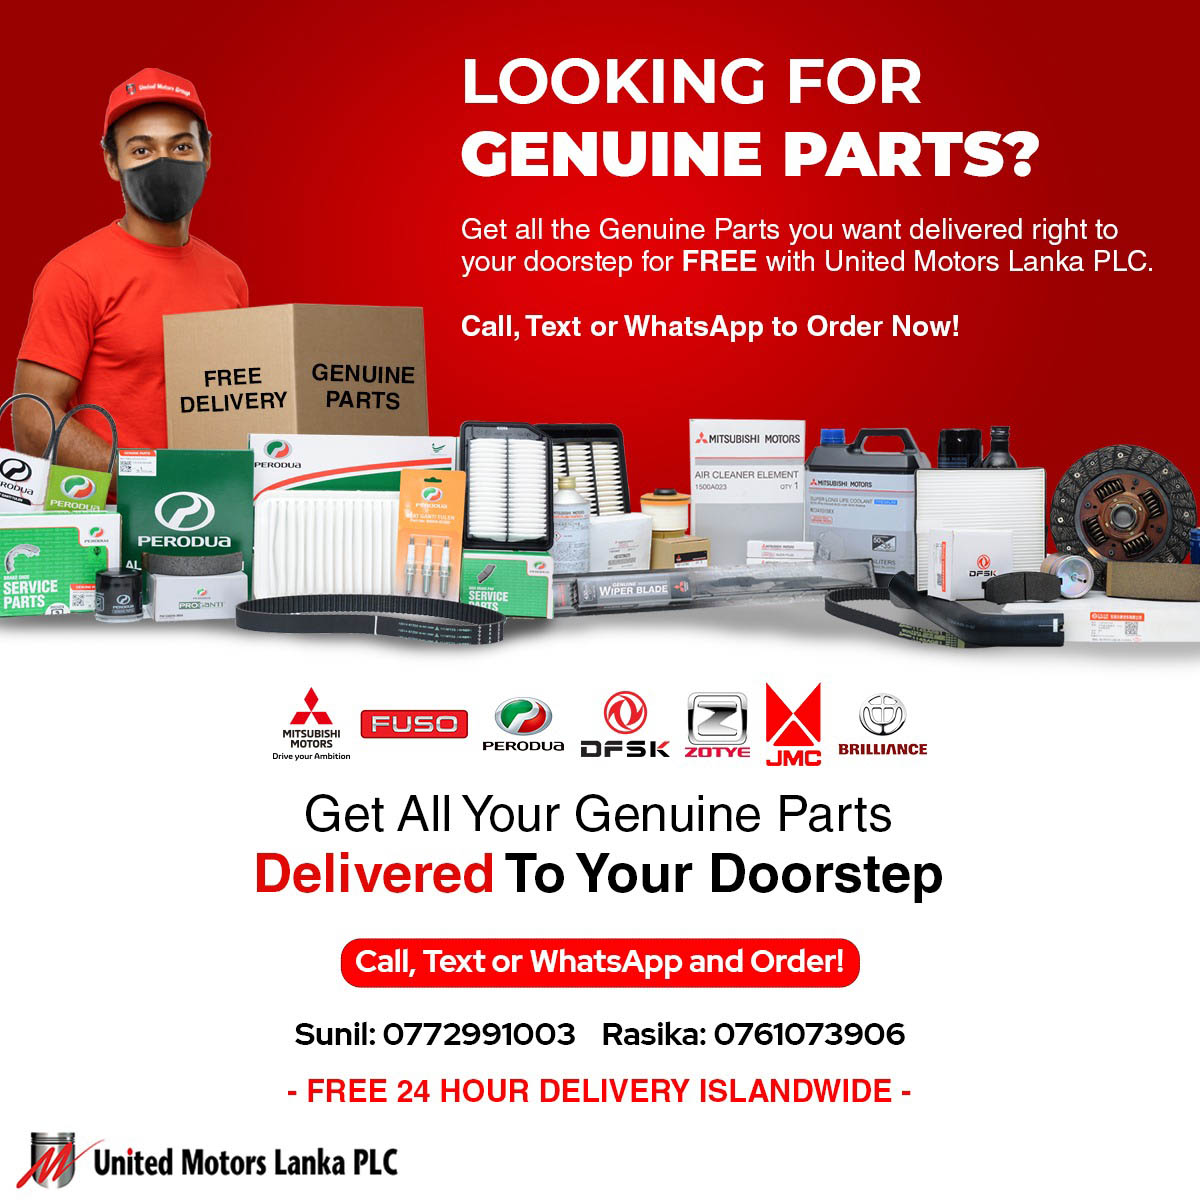 Image for Looking For Genuine Parts?